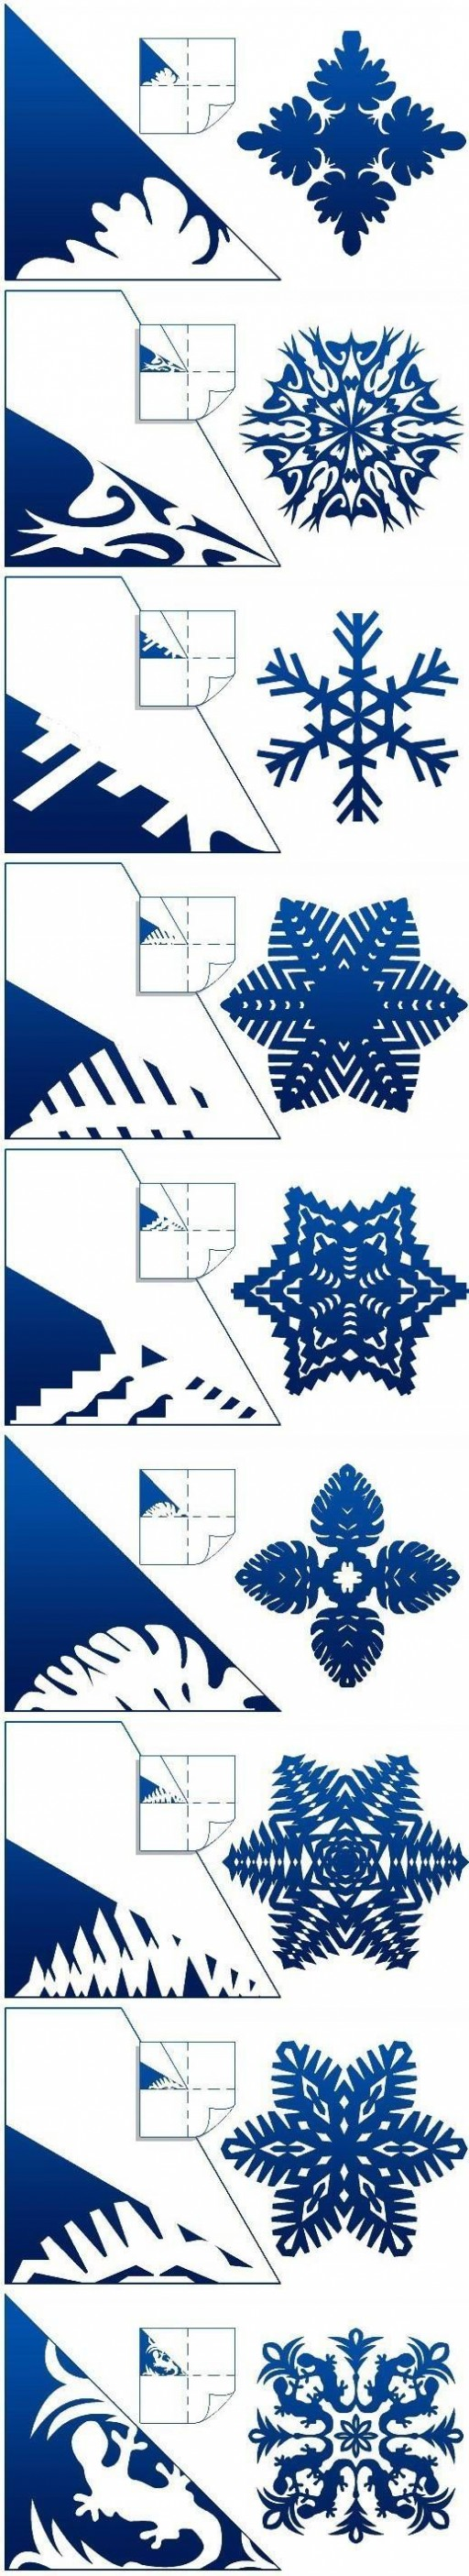 How to make Schemes of Paper Snowflakes step by step DIY tutorial instructions